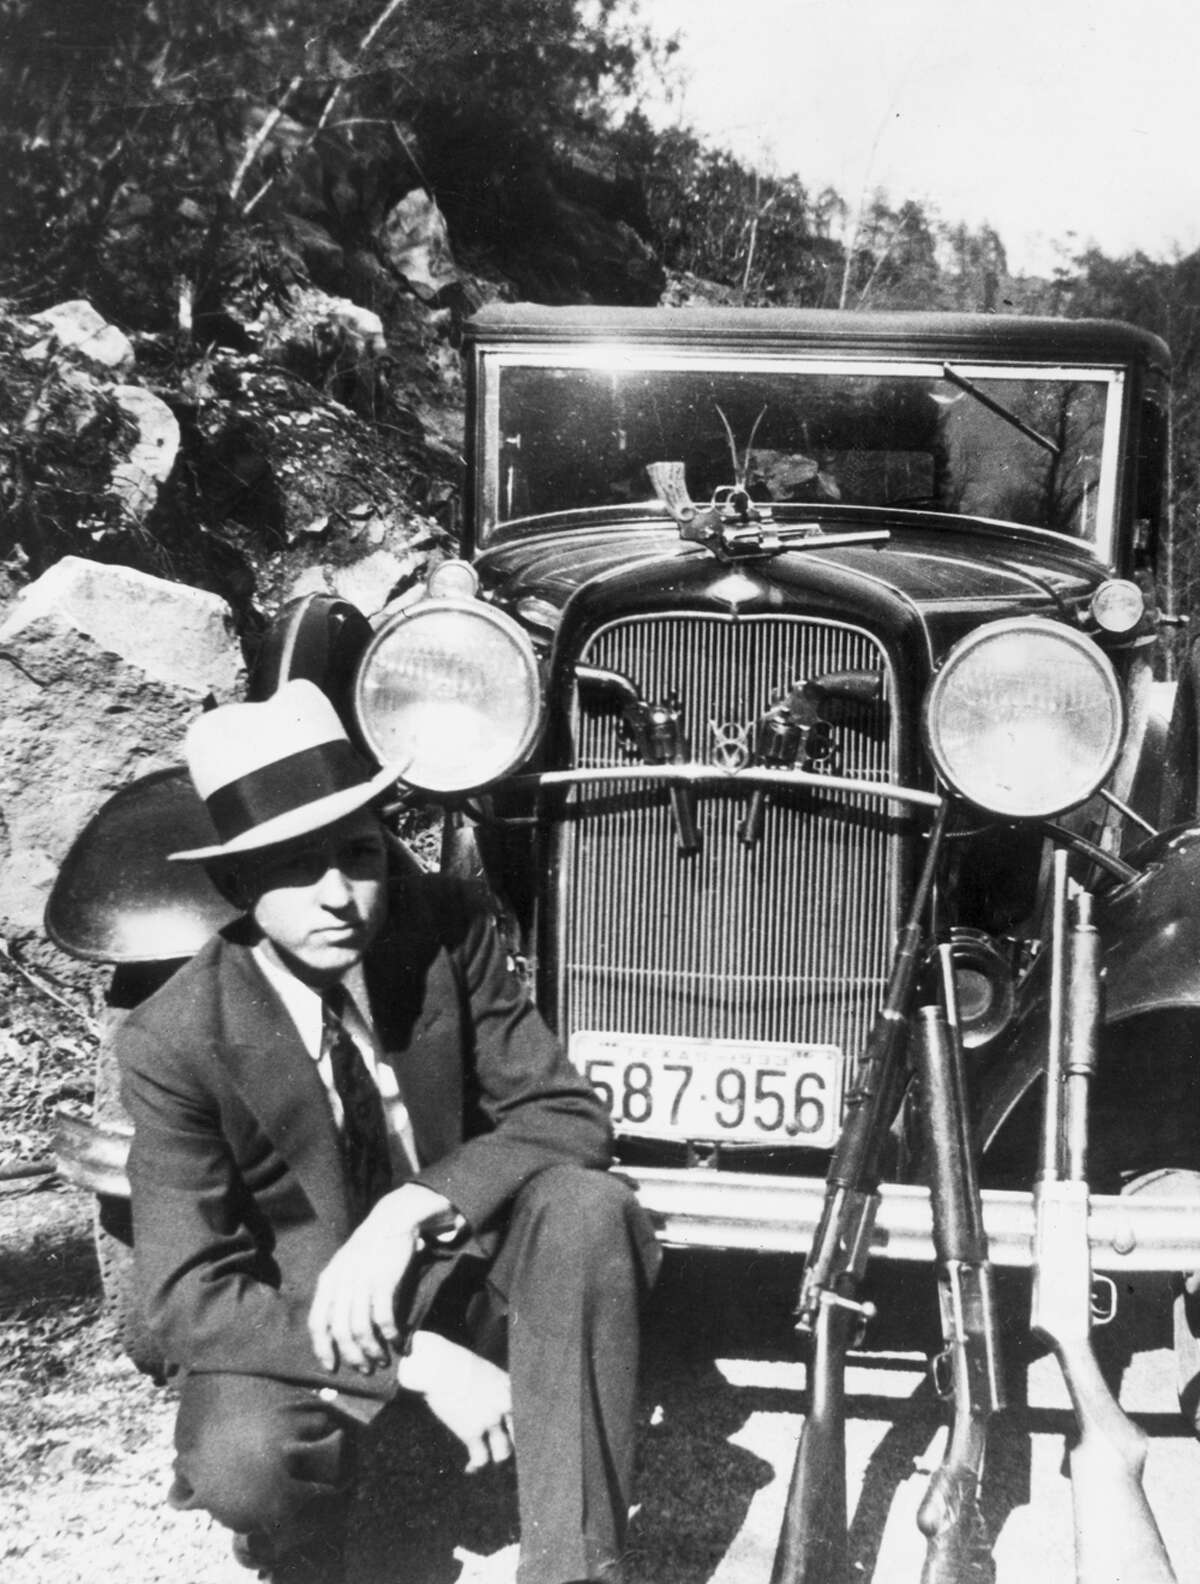 Clyde Barrow crouches in front of a car with a handgun hanging from the hood ornament, two handguns in the front grill and three rifles laid against the front fender, possibly in Joplin, Mo., in April 1933.